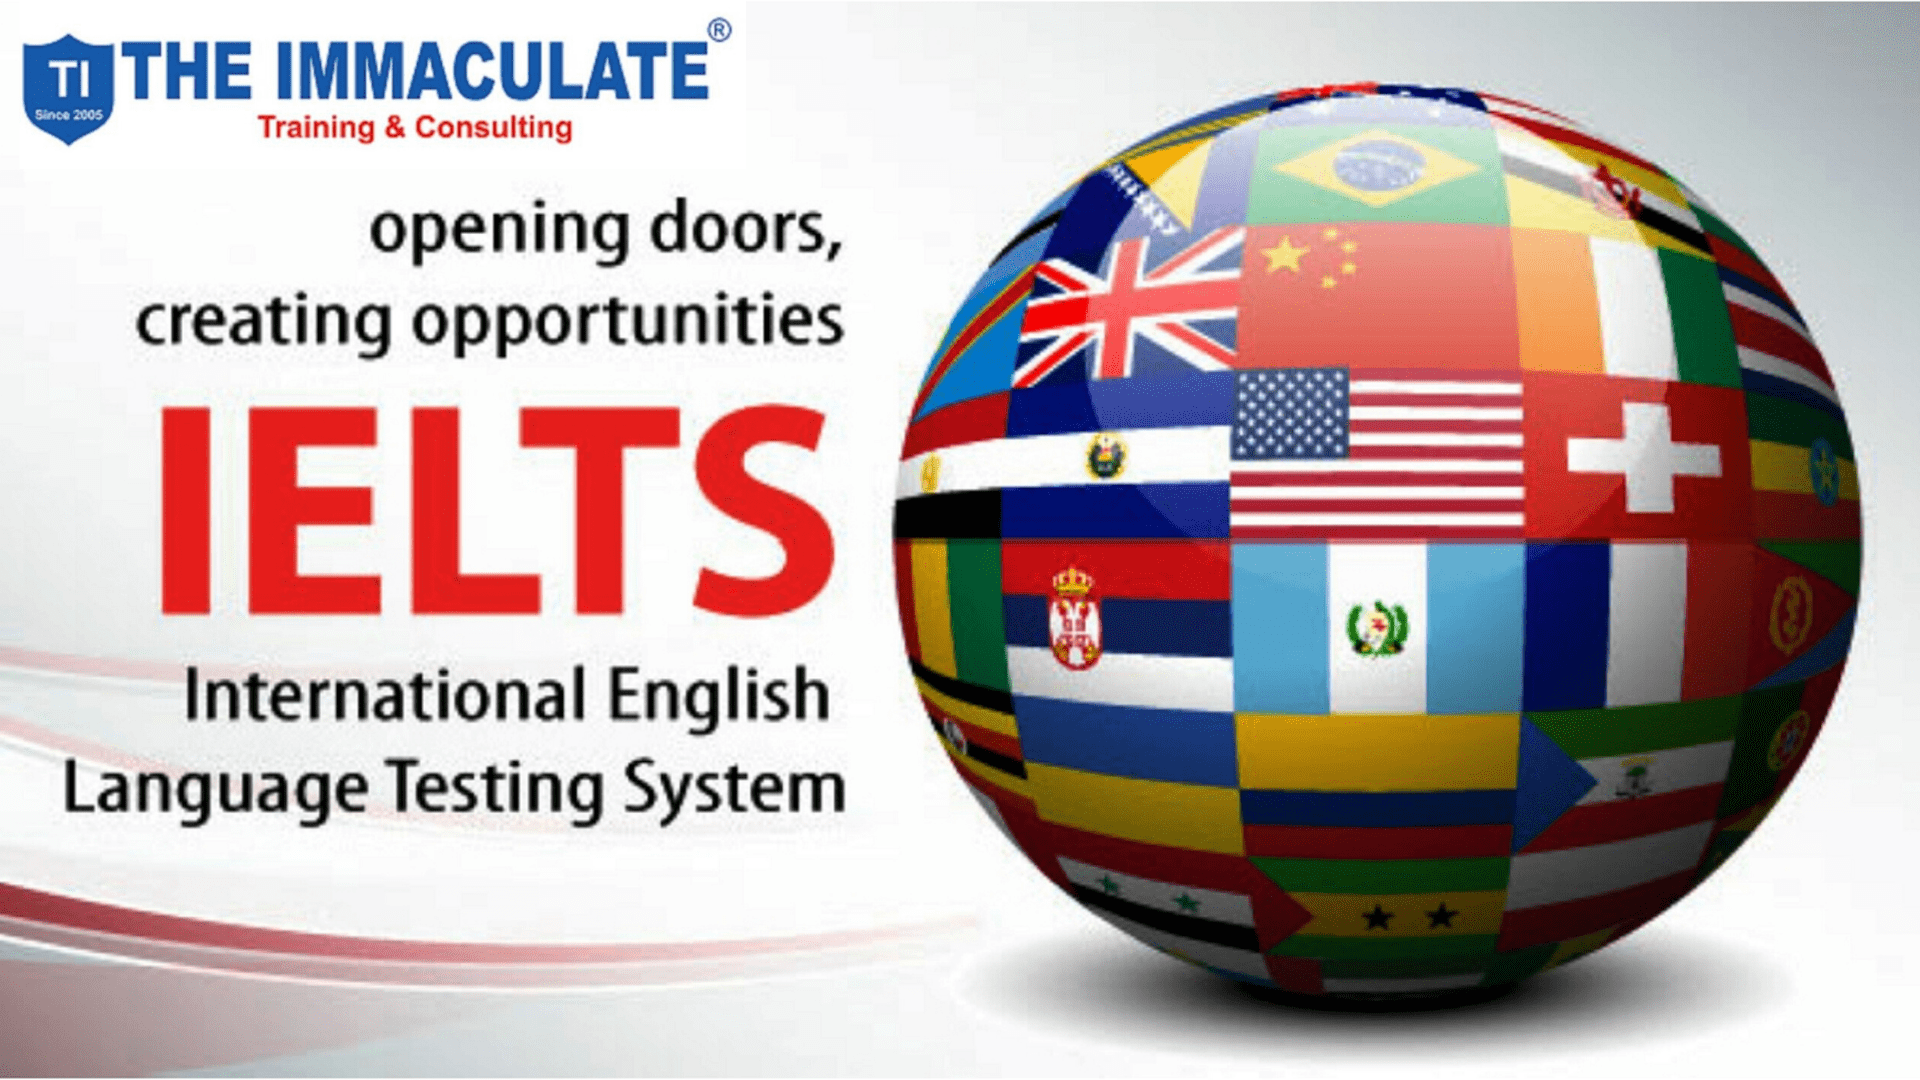 ielts at the immaculate